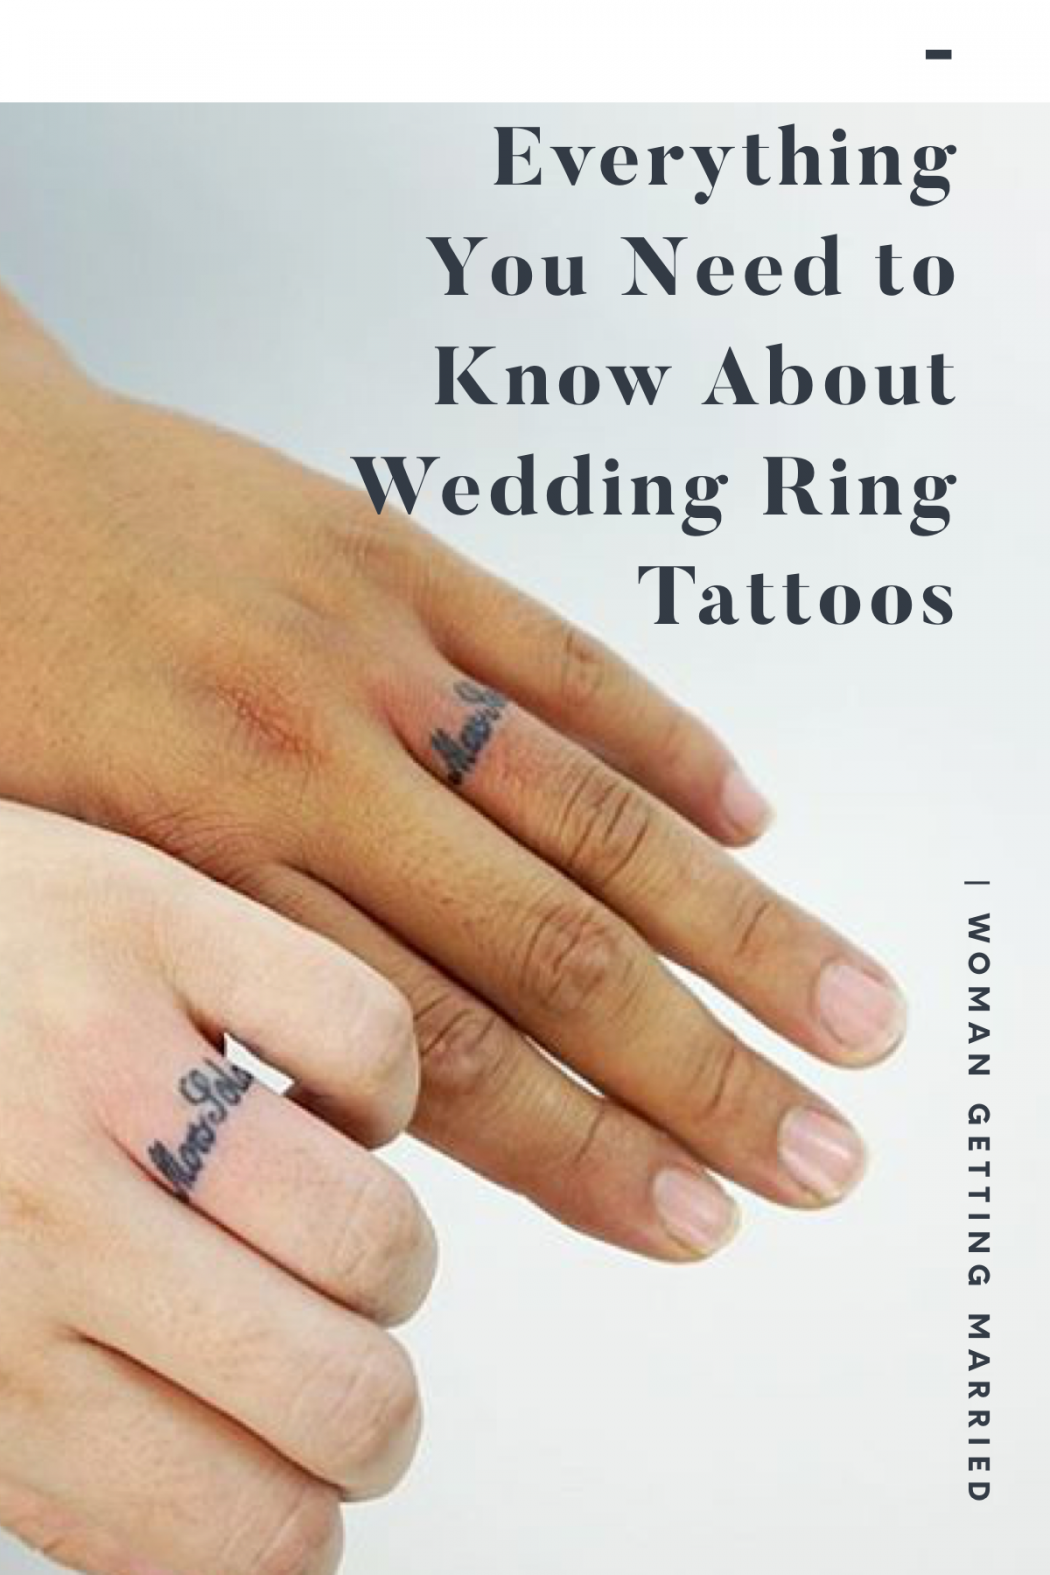 Thinking of Getting Wedding Ring Tattoos? Read This First